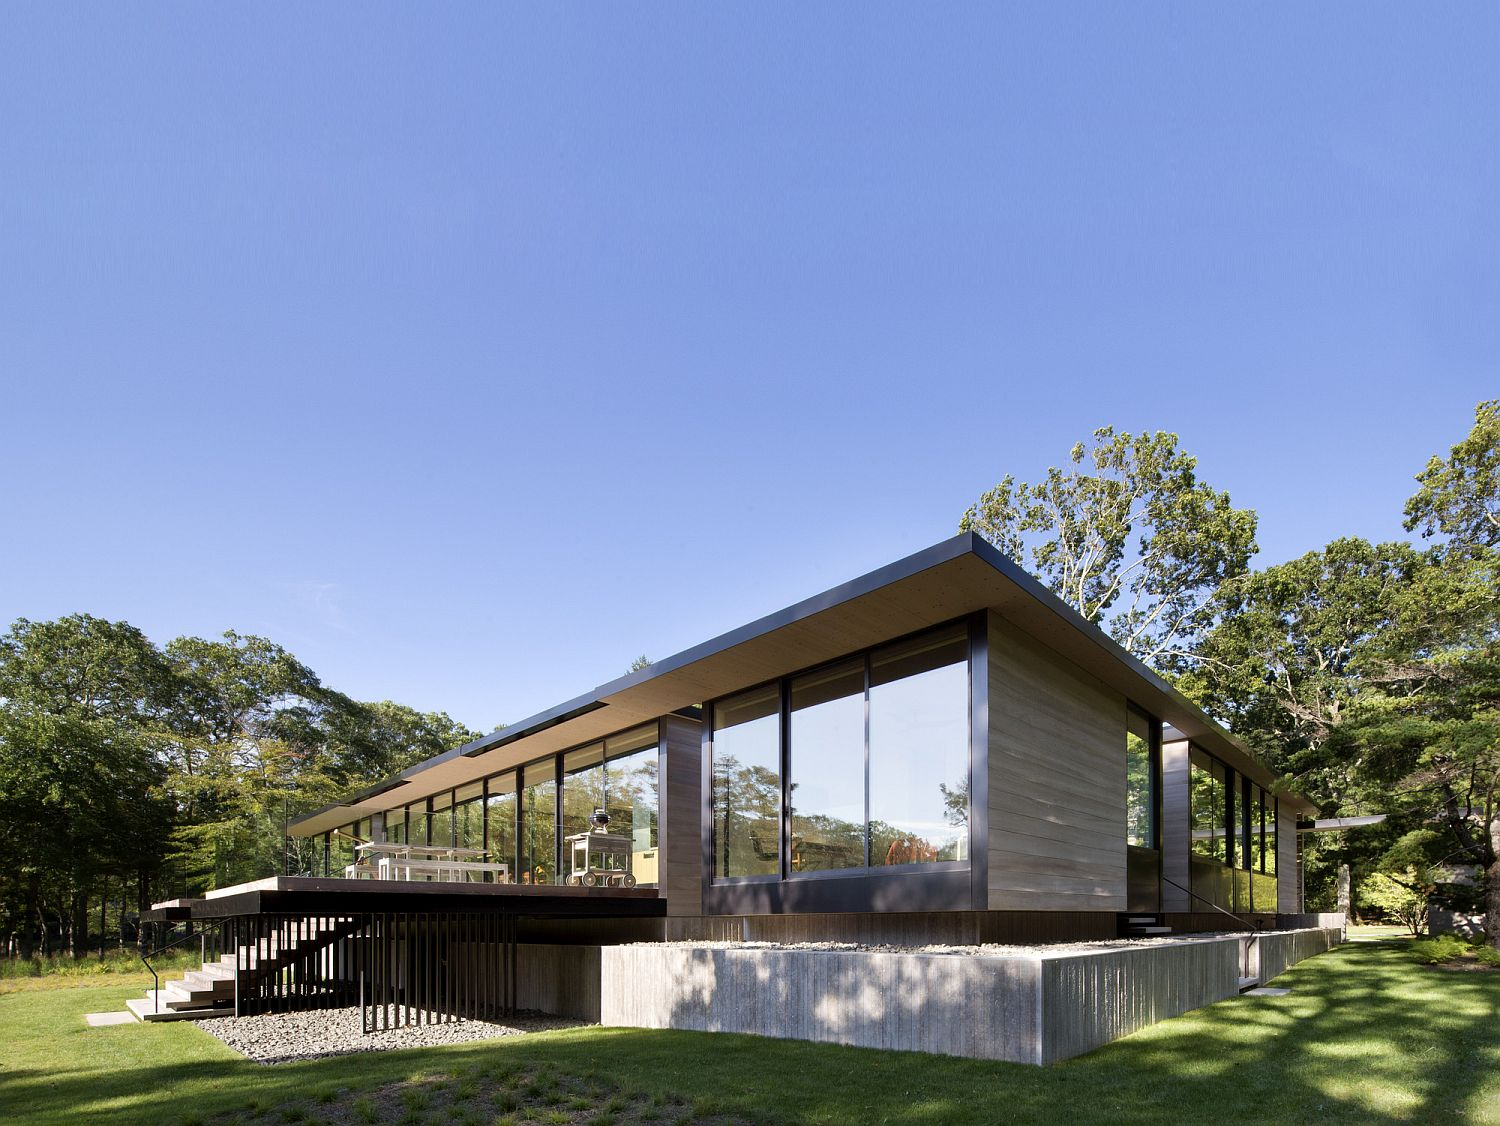 Different terraces and surfaces around the elevated house provide smart outdoor spaces